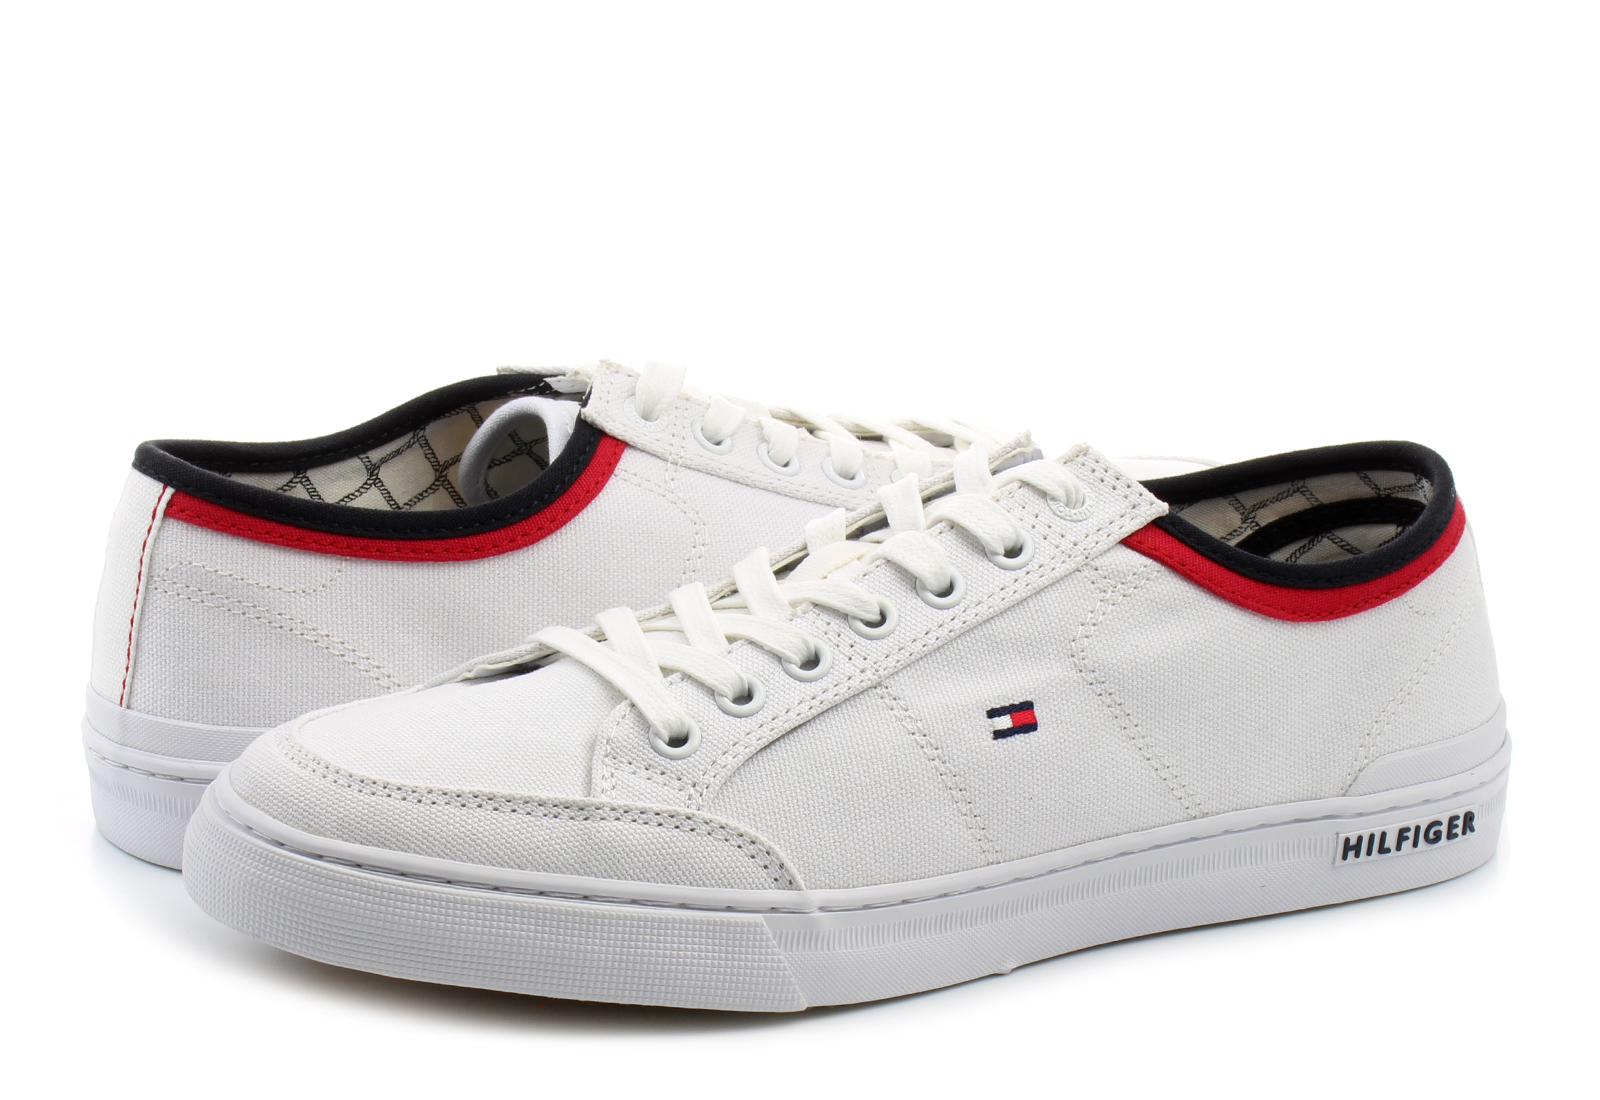 tommy hilfiger shoes harrington 5d2 17s 0543 100 online shop for sneakers shoes and boots. Black Bedroom Furniture Sets. Home Design Ideas